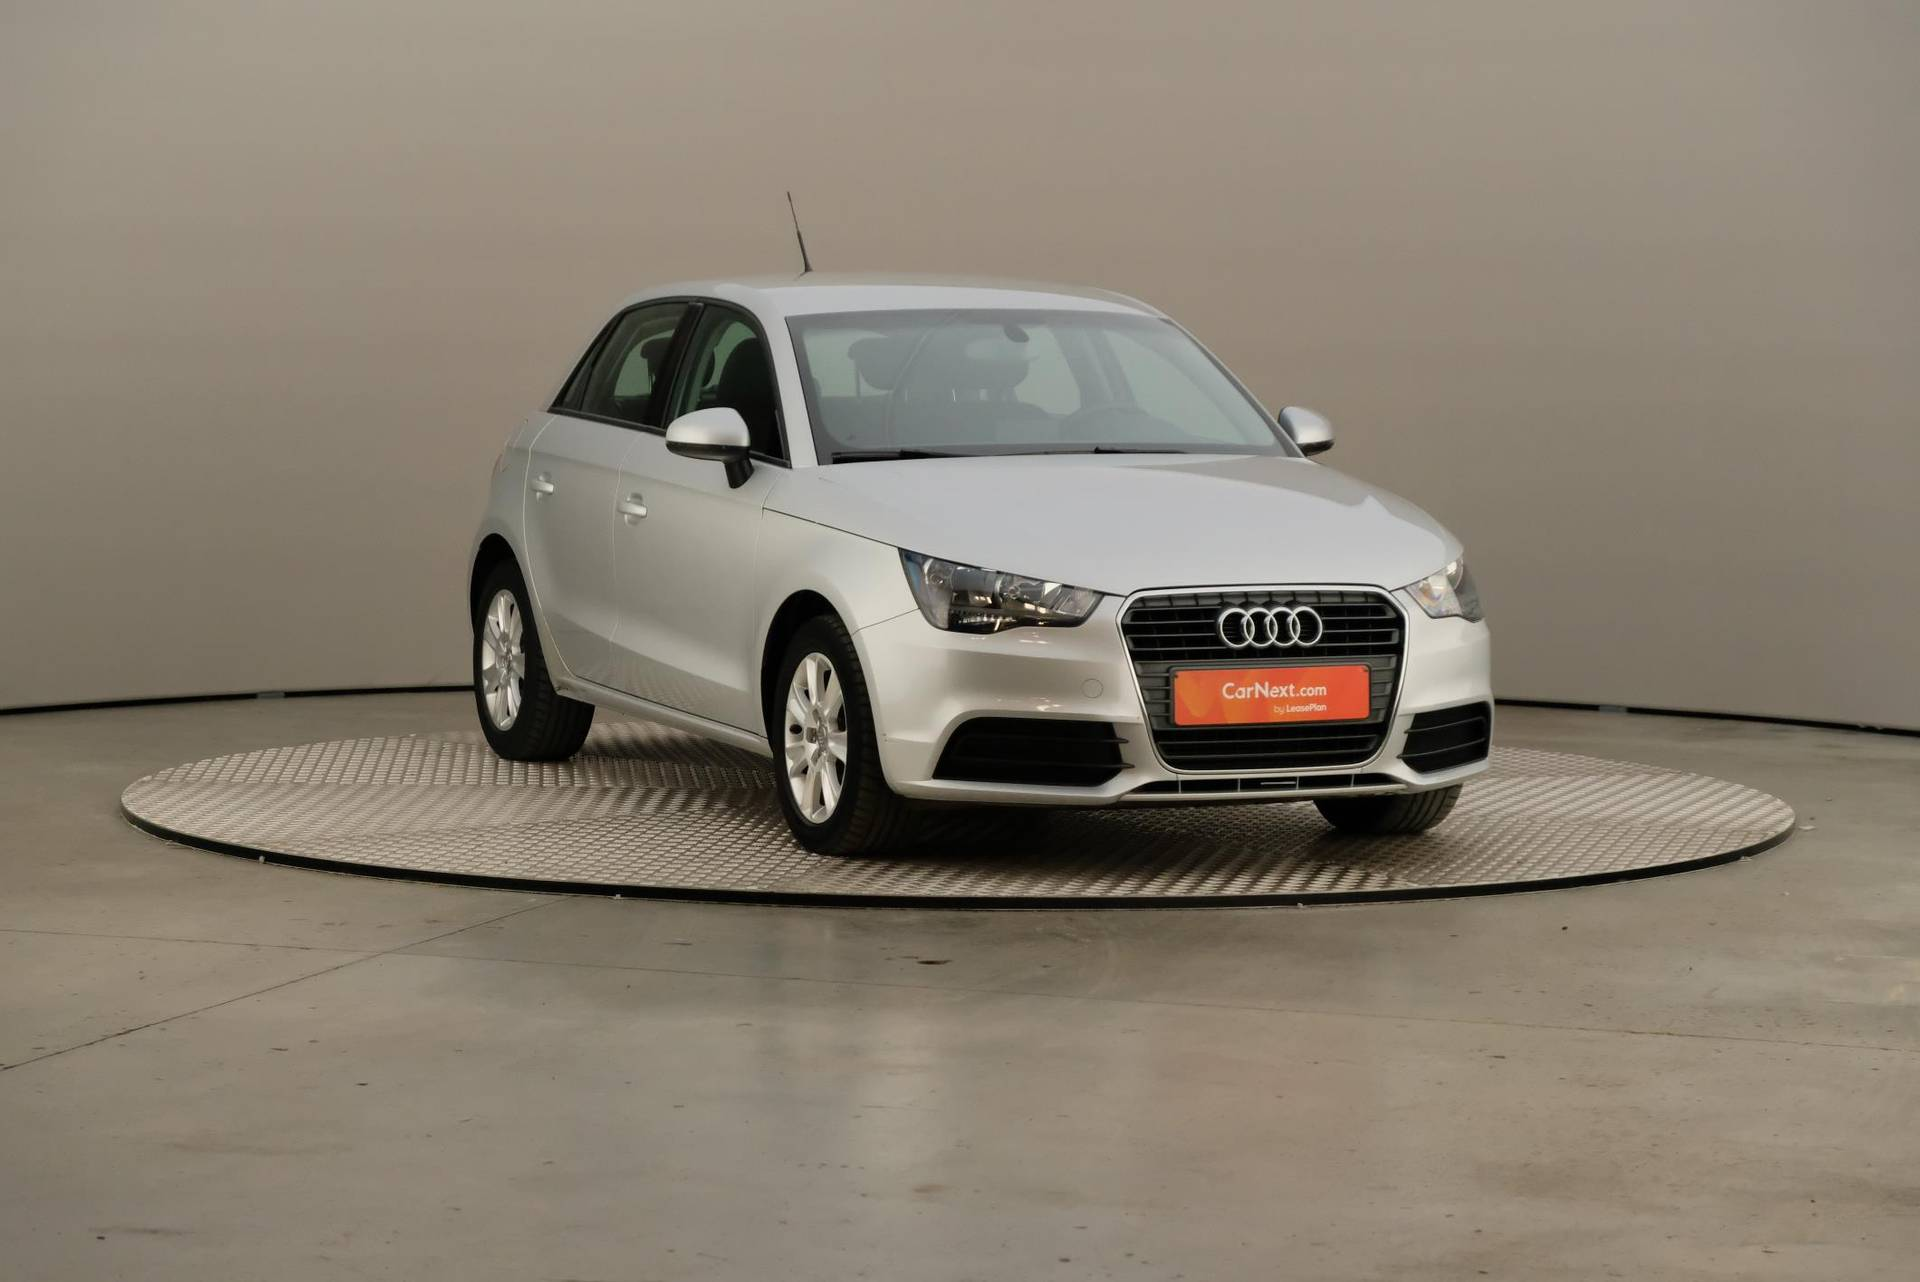 Audi A1 1.6 TDI Sportback, Attraction S&S PDC BT, 360-image29